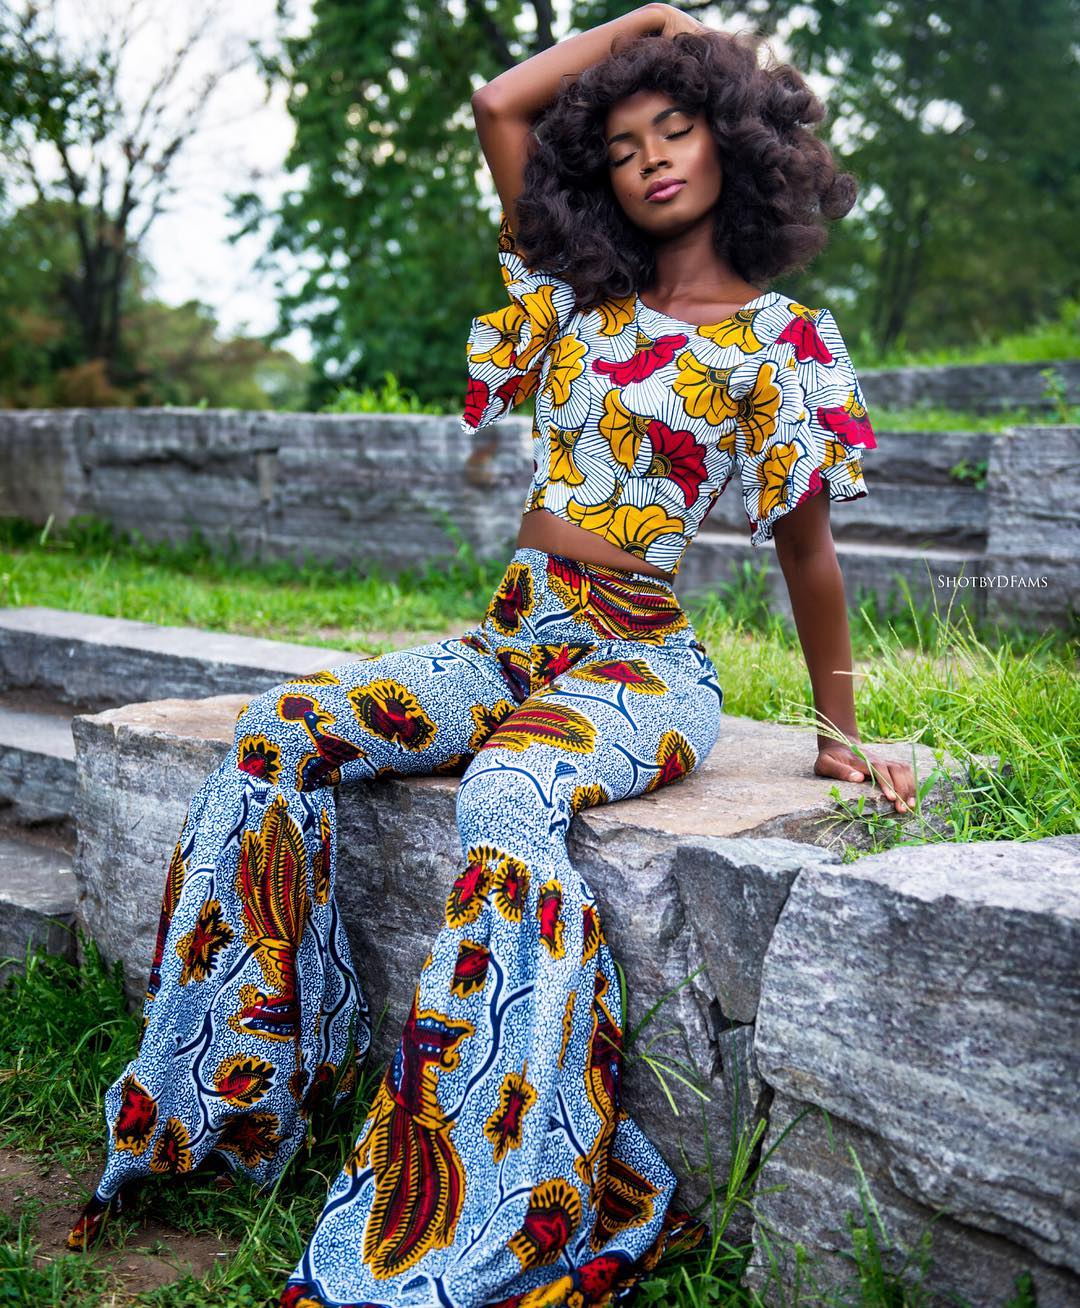 Editorial-Blissfull Queen for Omooba Fashions by Dfams 1